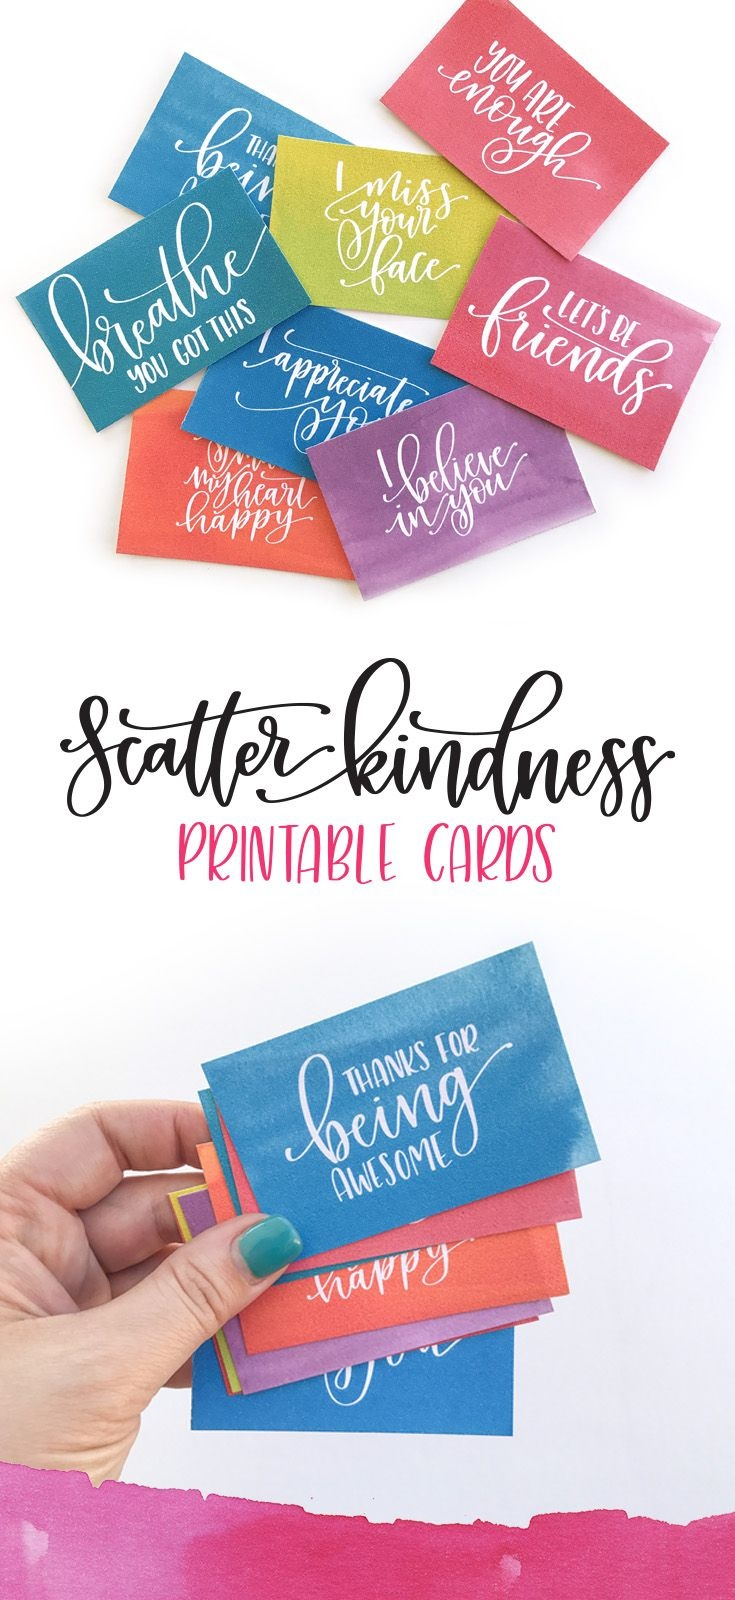 Scatter Kindness : Free Printable | Pretty Printables | Kindness - Free Printable Kindness Cards